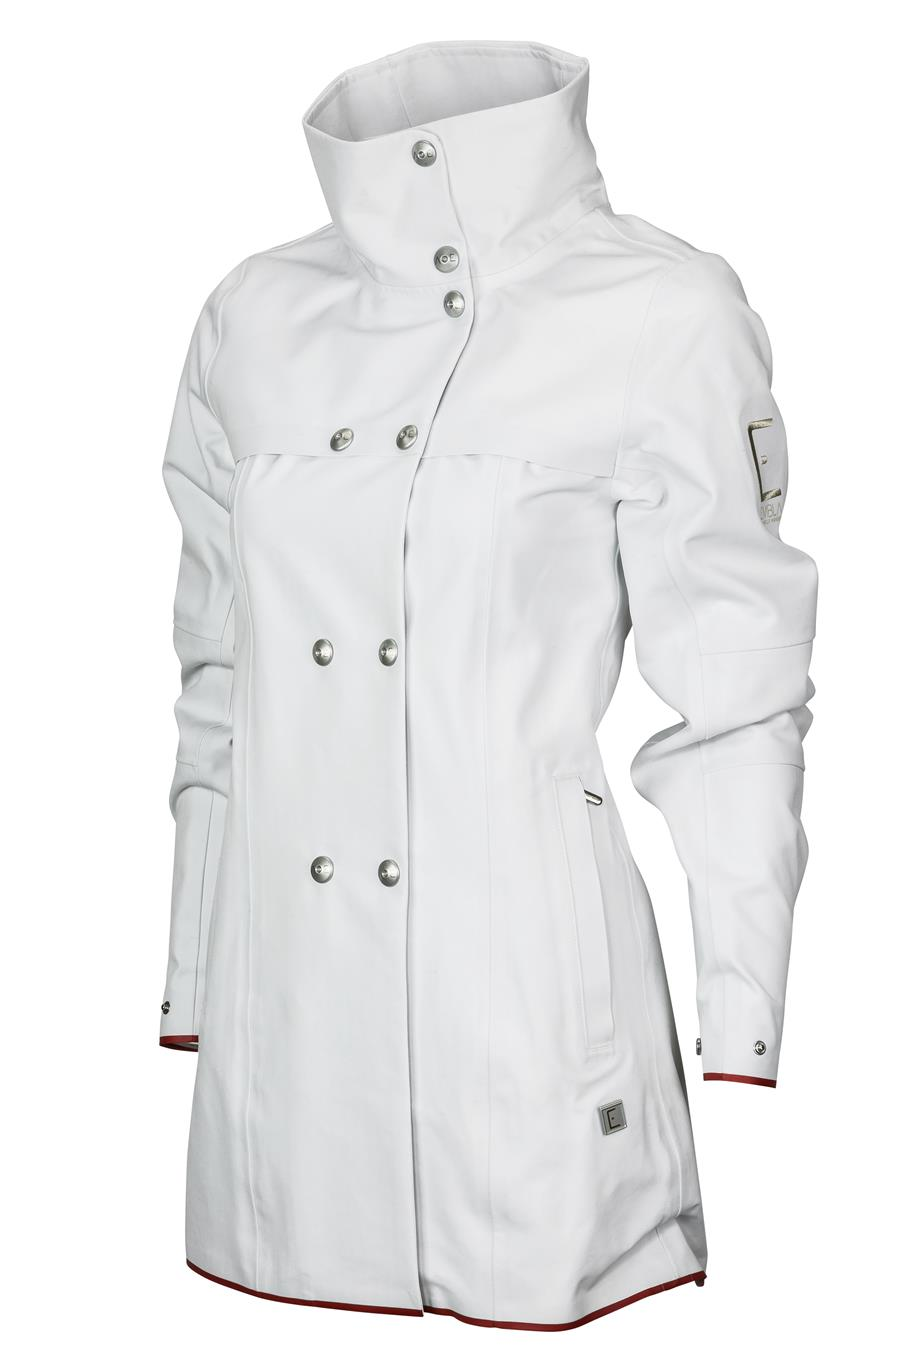 27439 - ASK BY HELLY HANSEN MENS & WOMENS COATS Europe